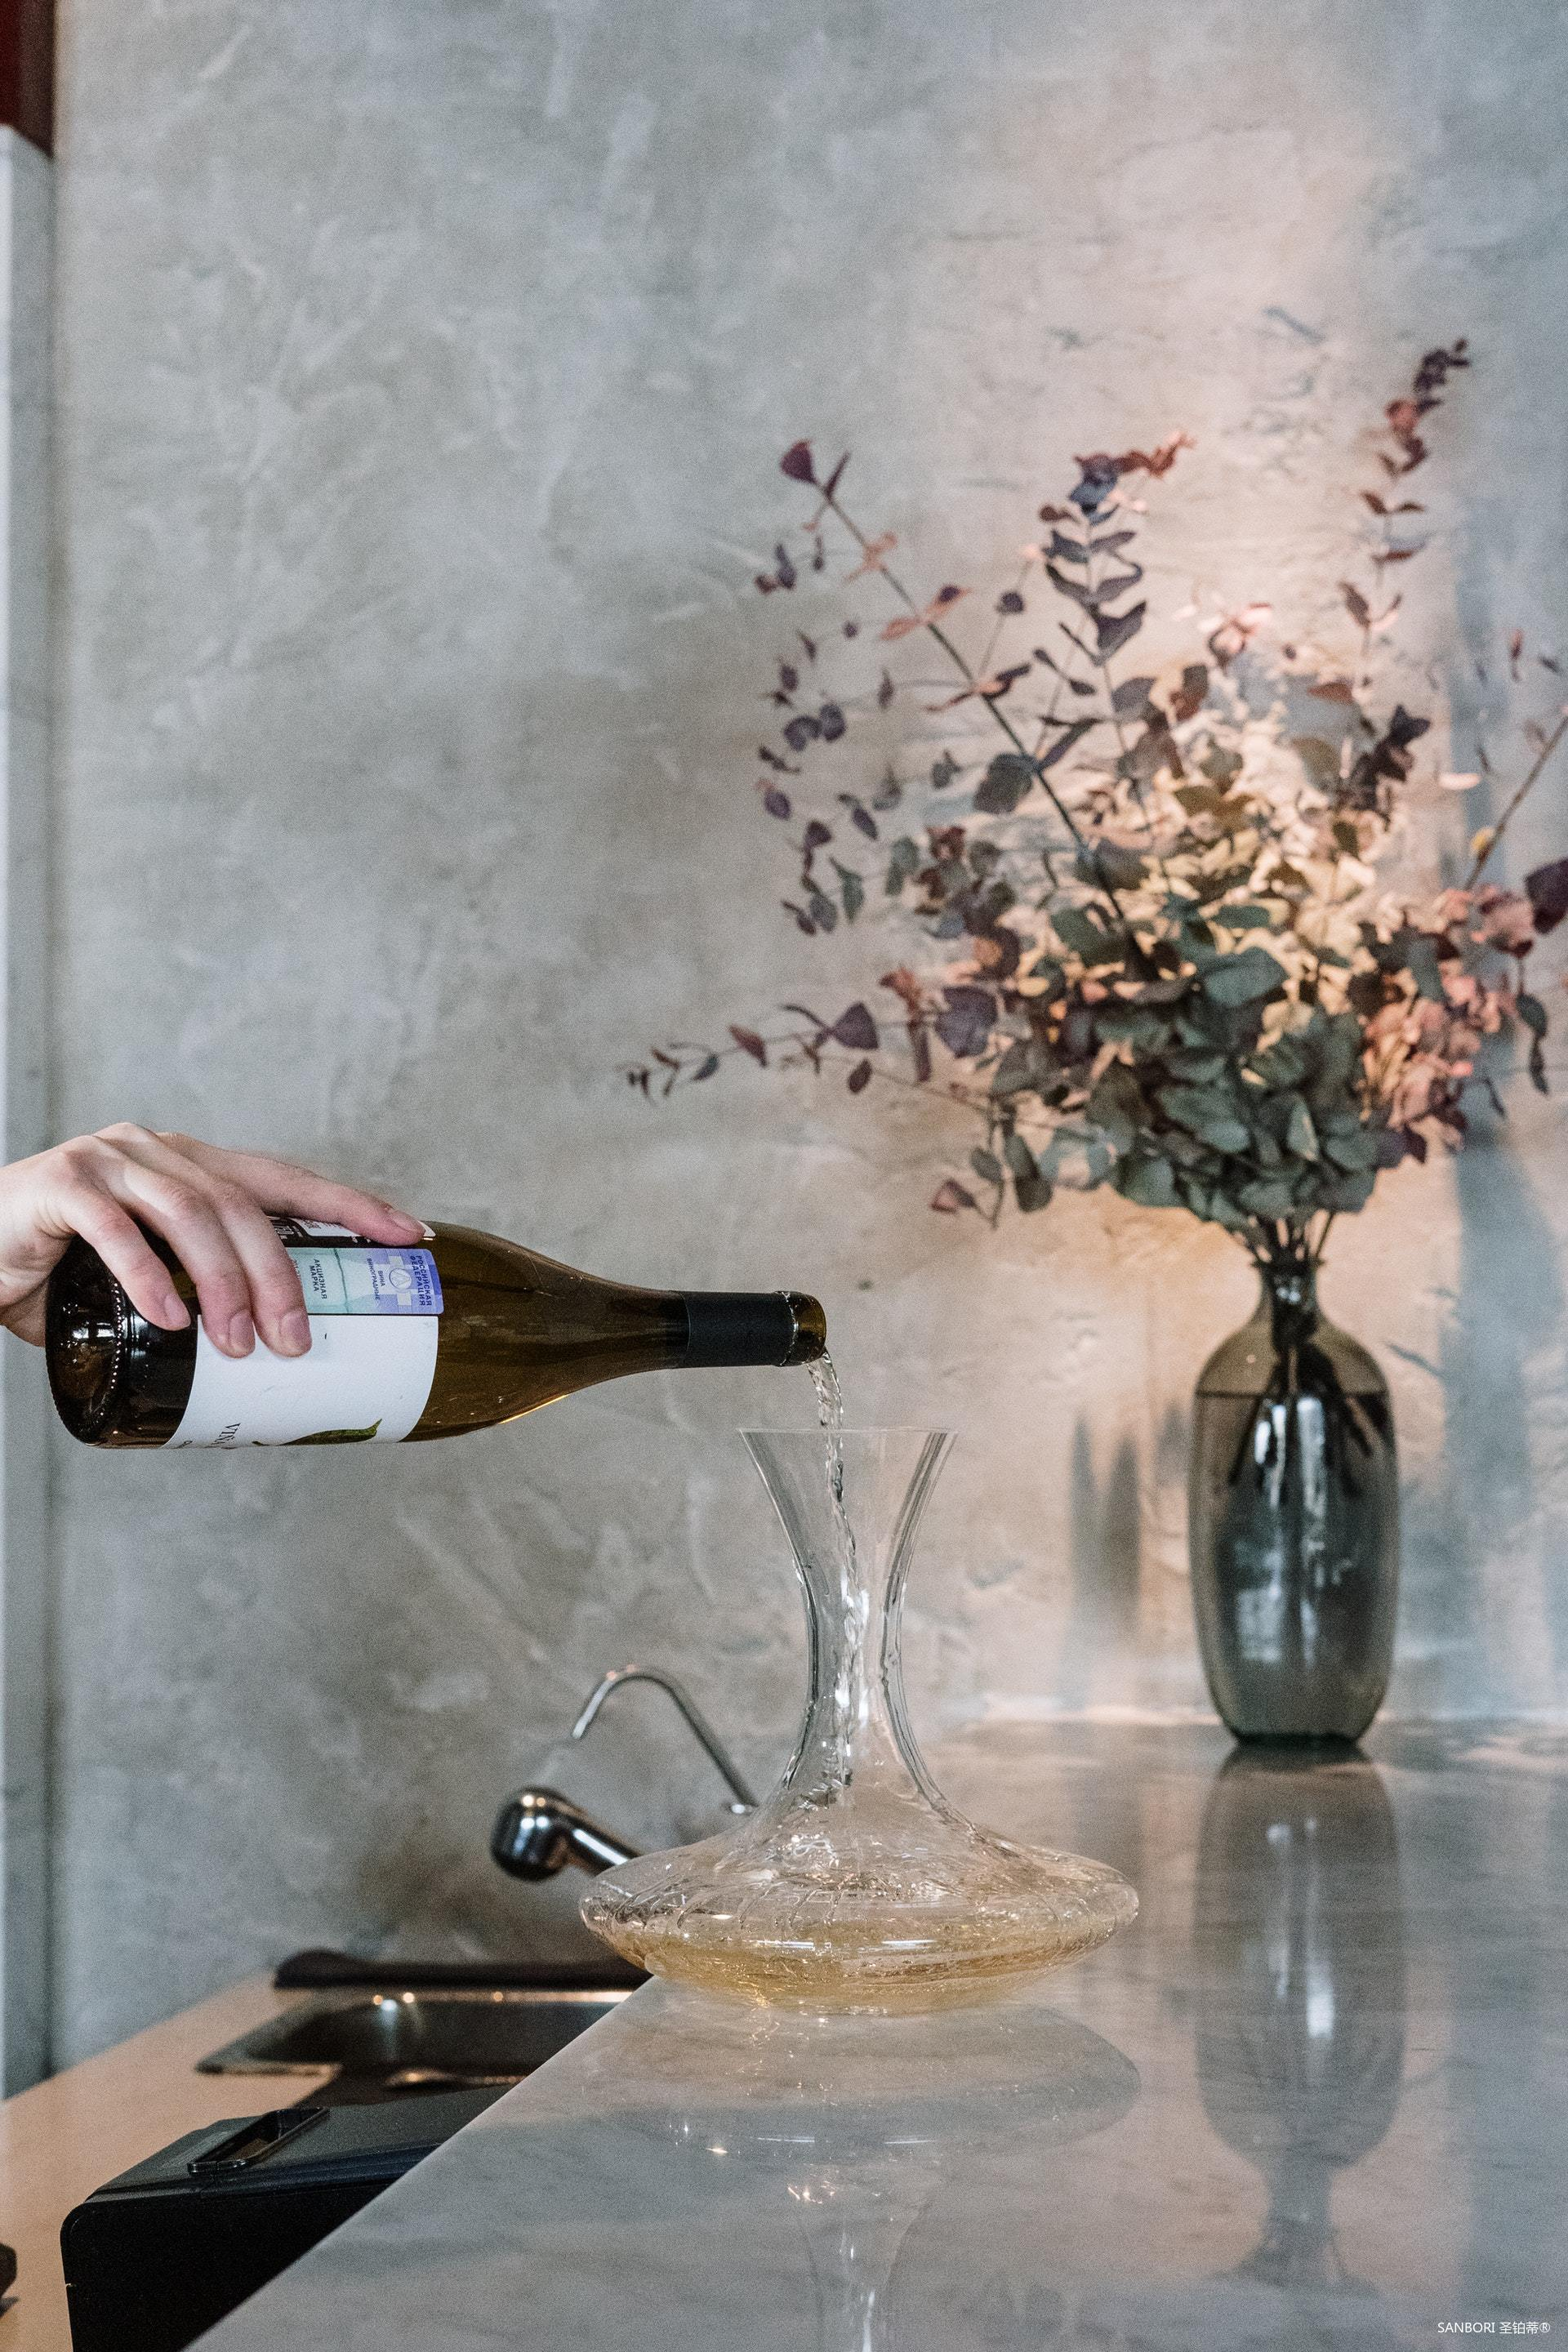 person-pouring-wine-on-clear-glass-bottle-4254021.jpg